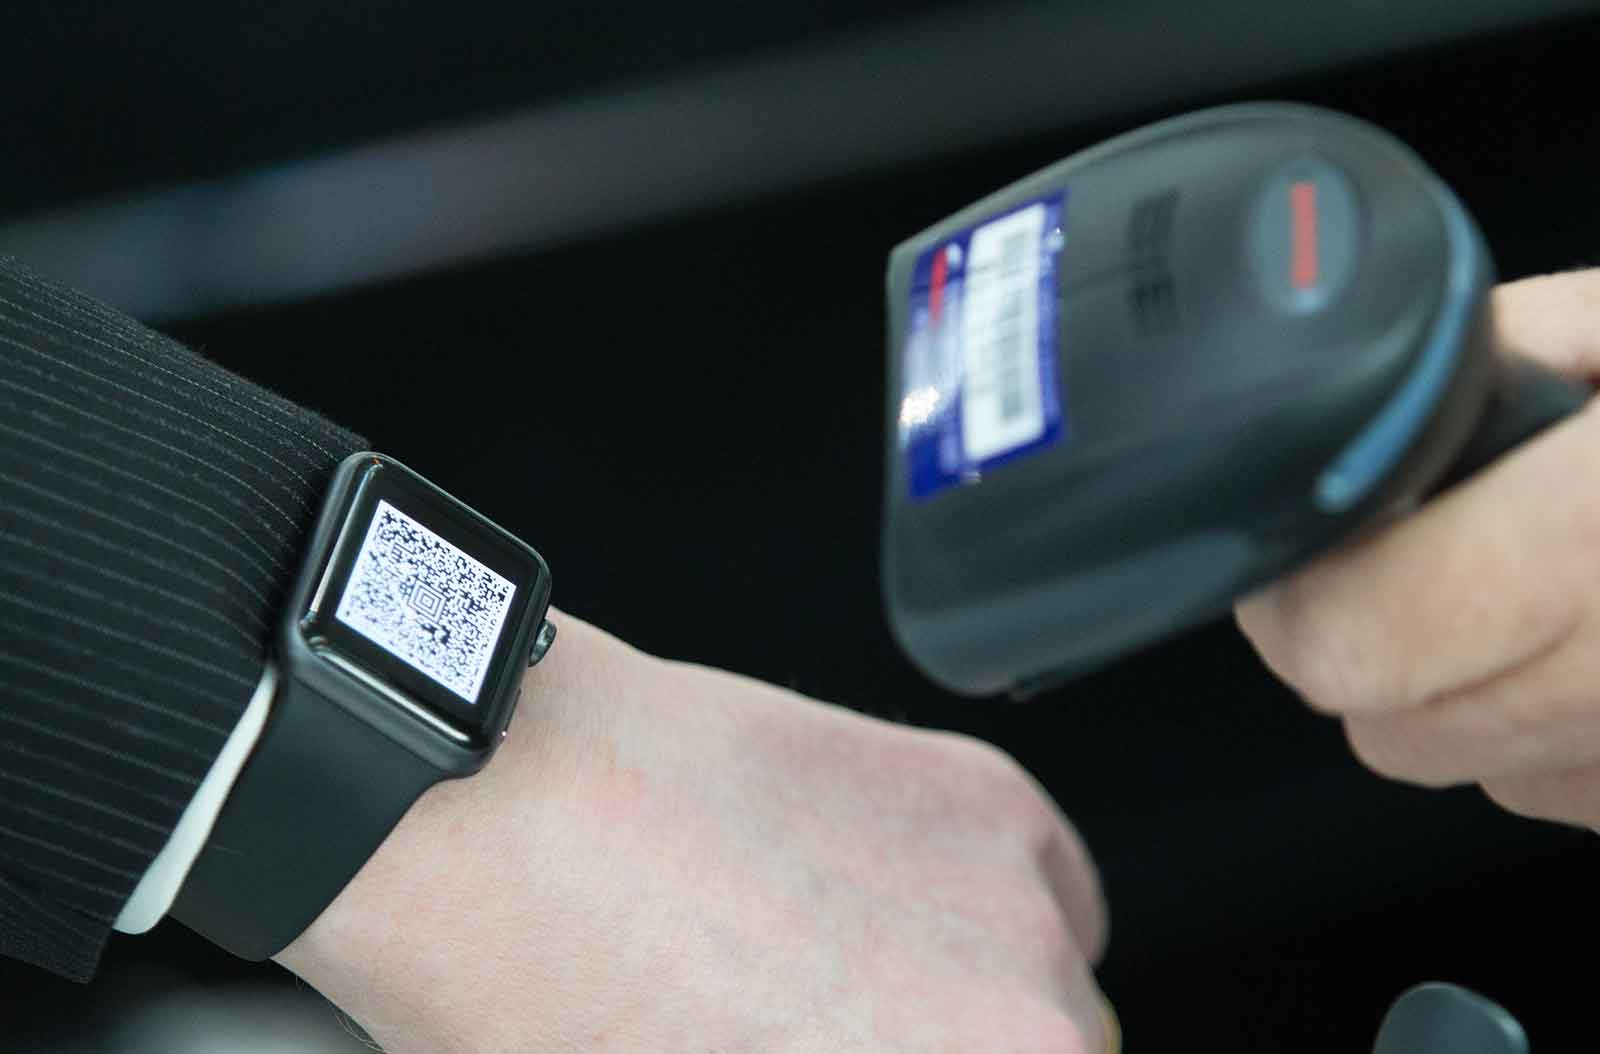 BA's app for the Apple Watch and airport scanner